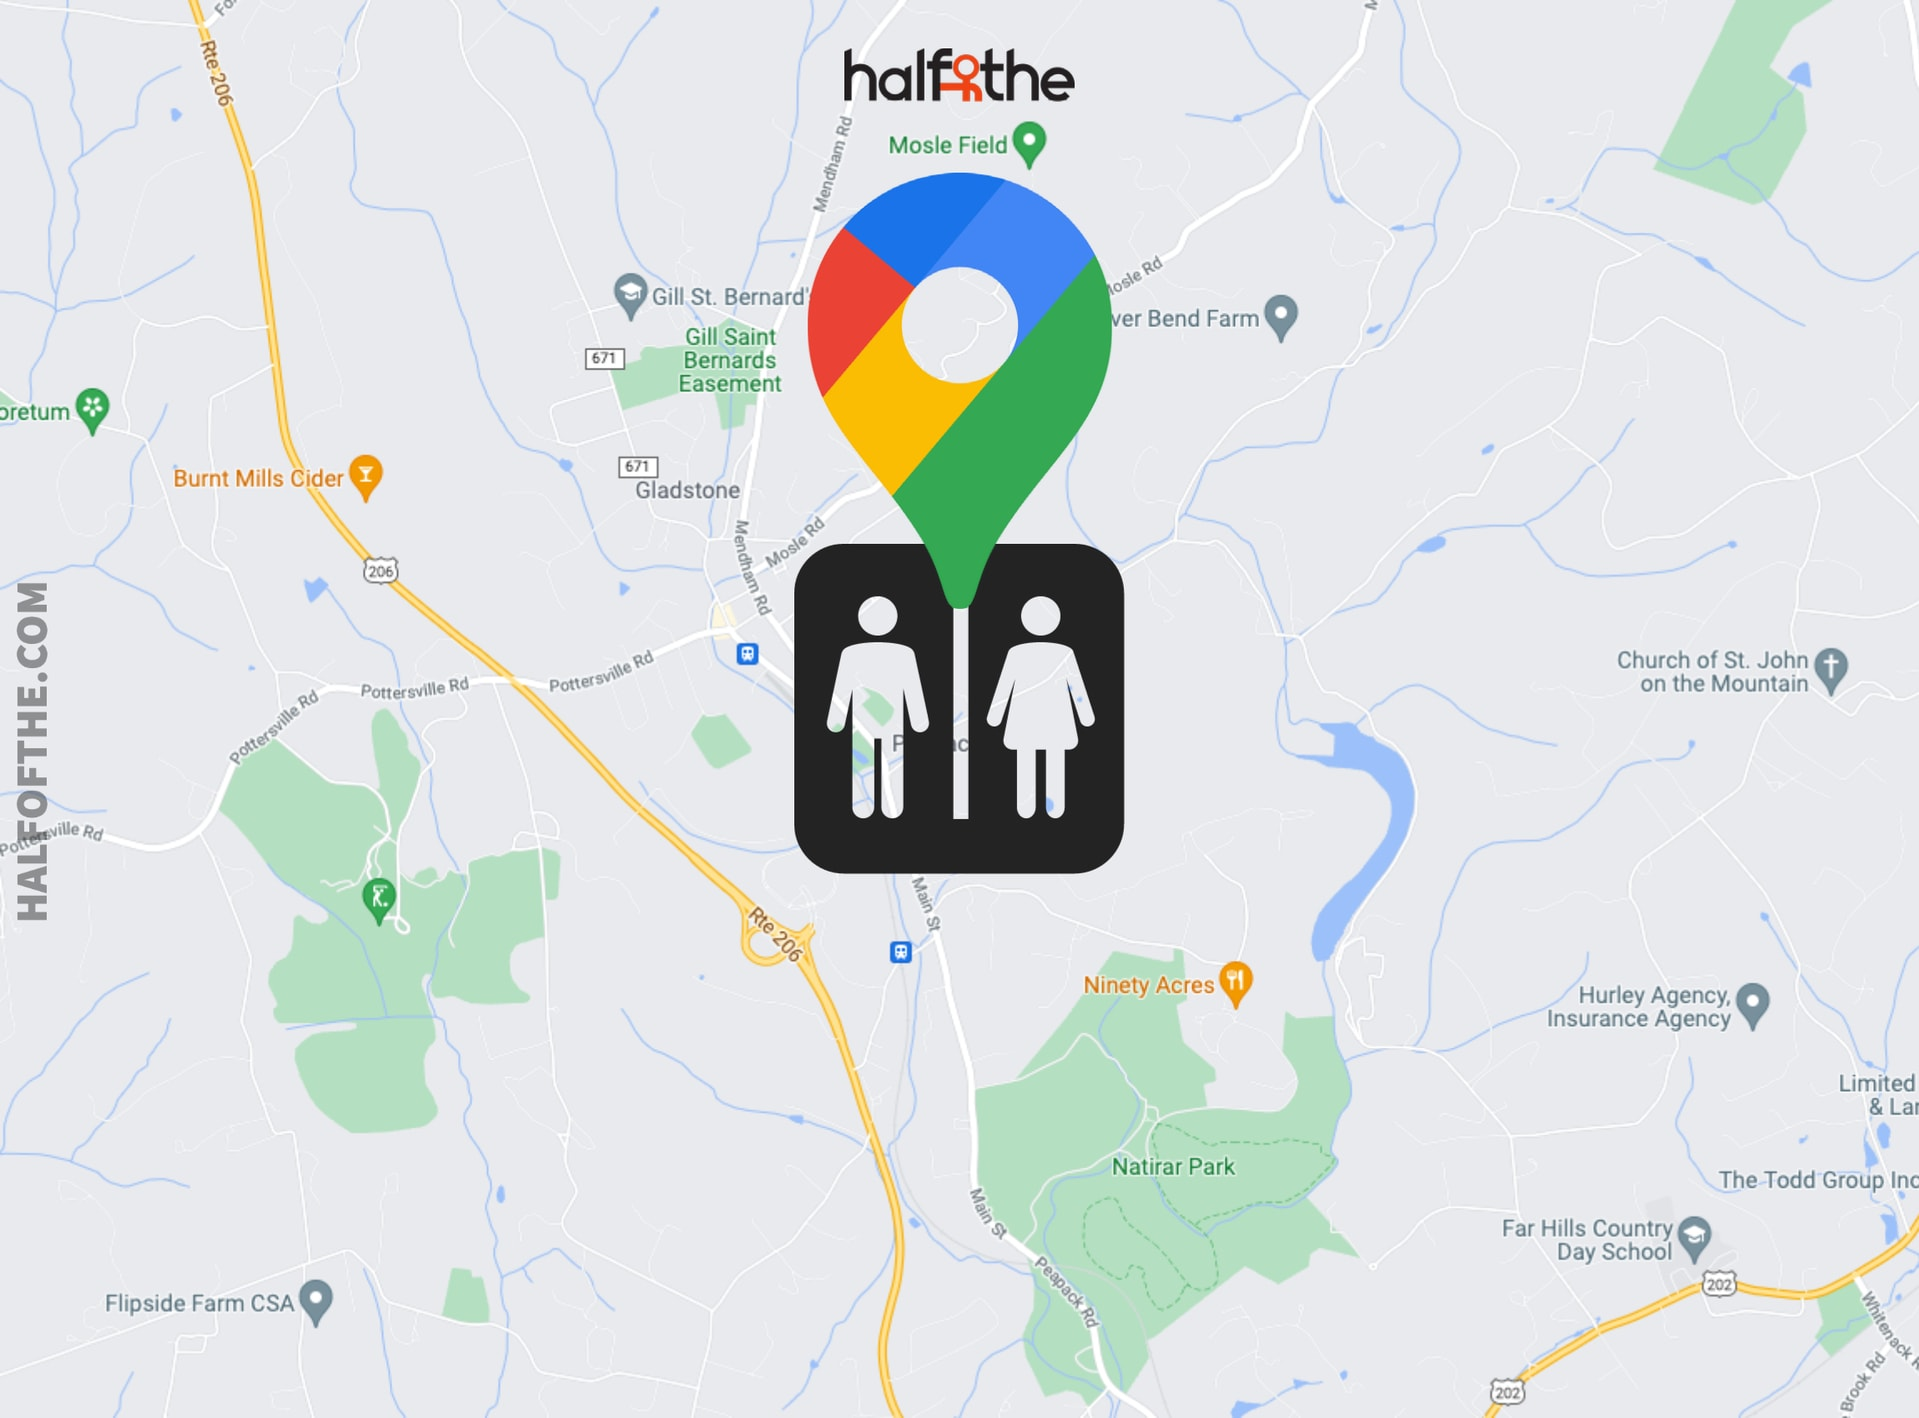 How to find public restrooms in Google Maps?